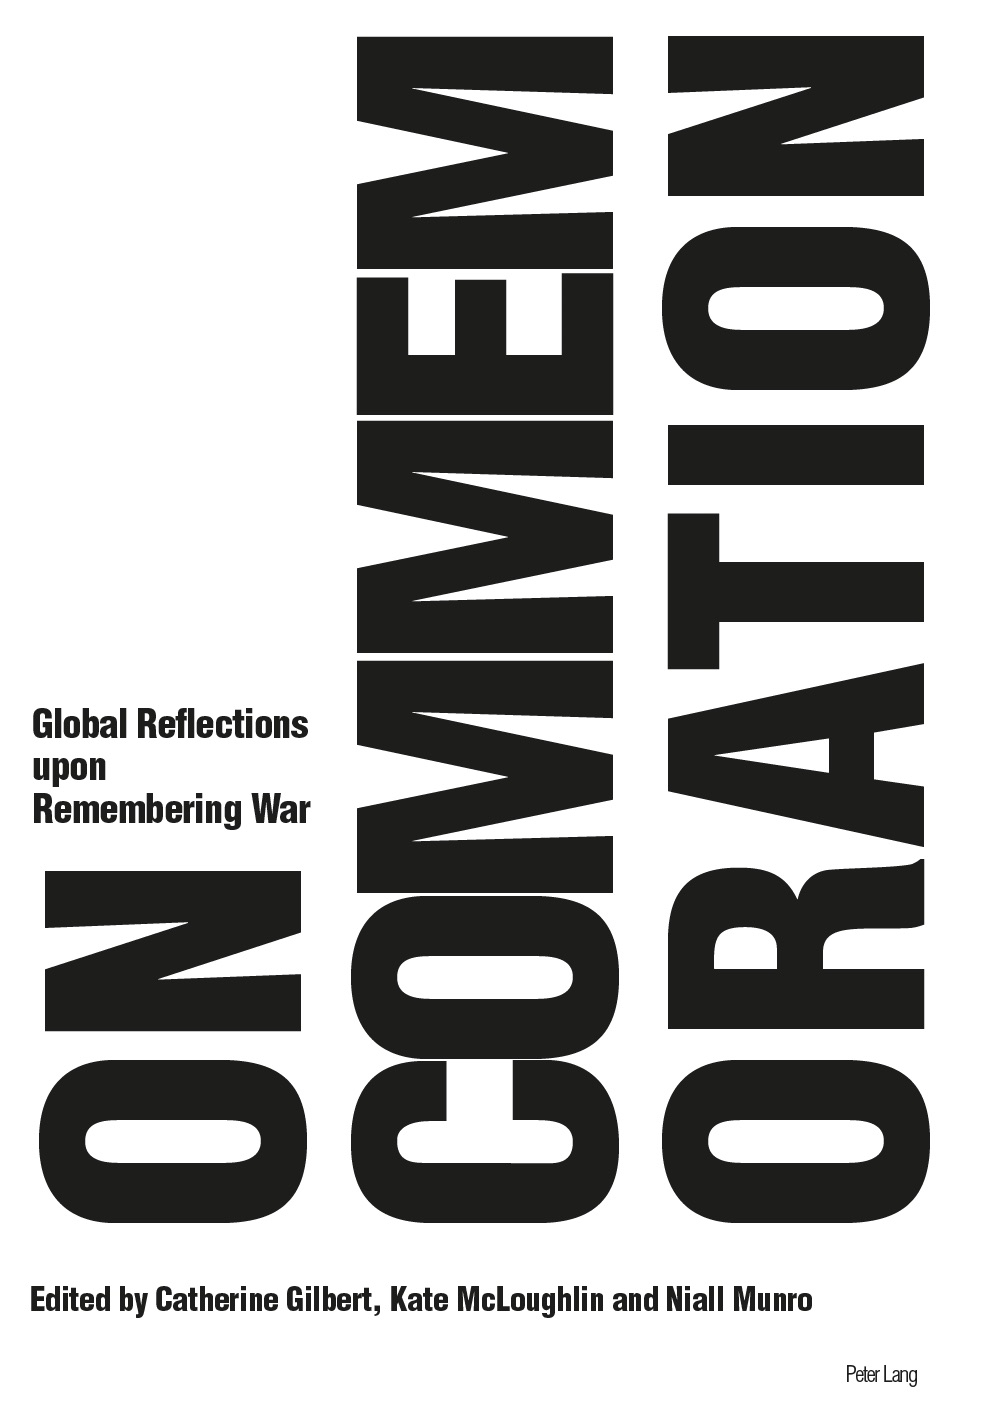 New Book: On Commemoration: Global Reflections upon Remembering War (edited by Catherine Gilbert, Kate McLoughlin, and Niall Munro)